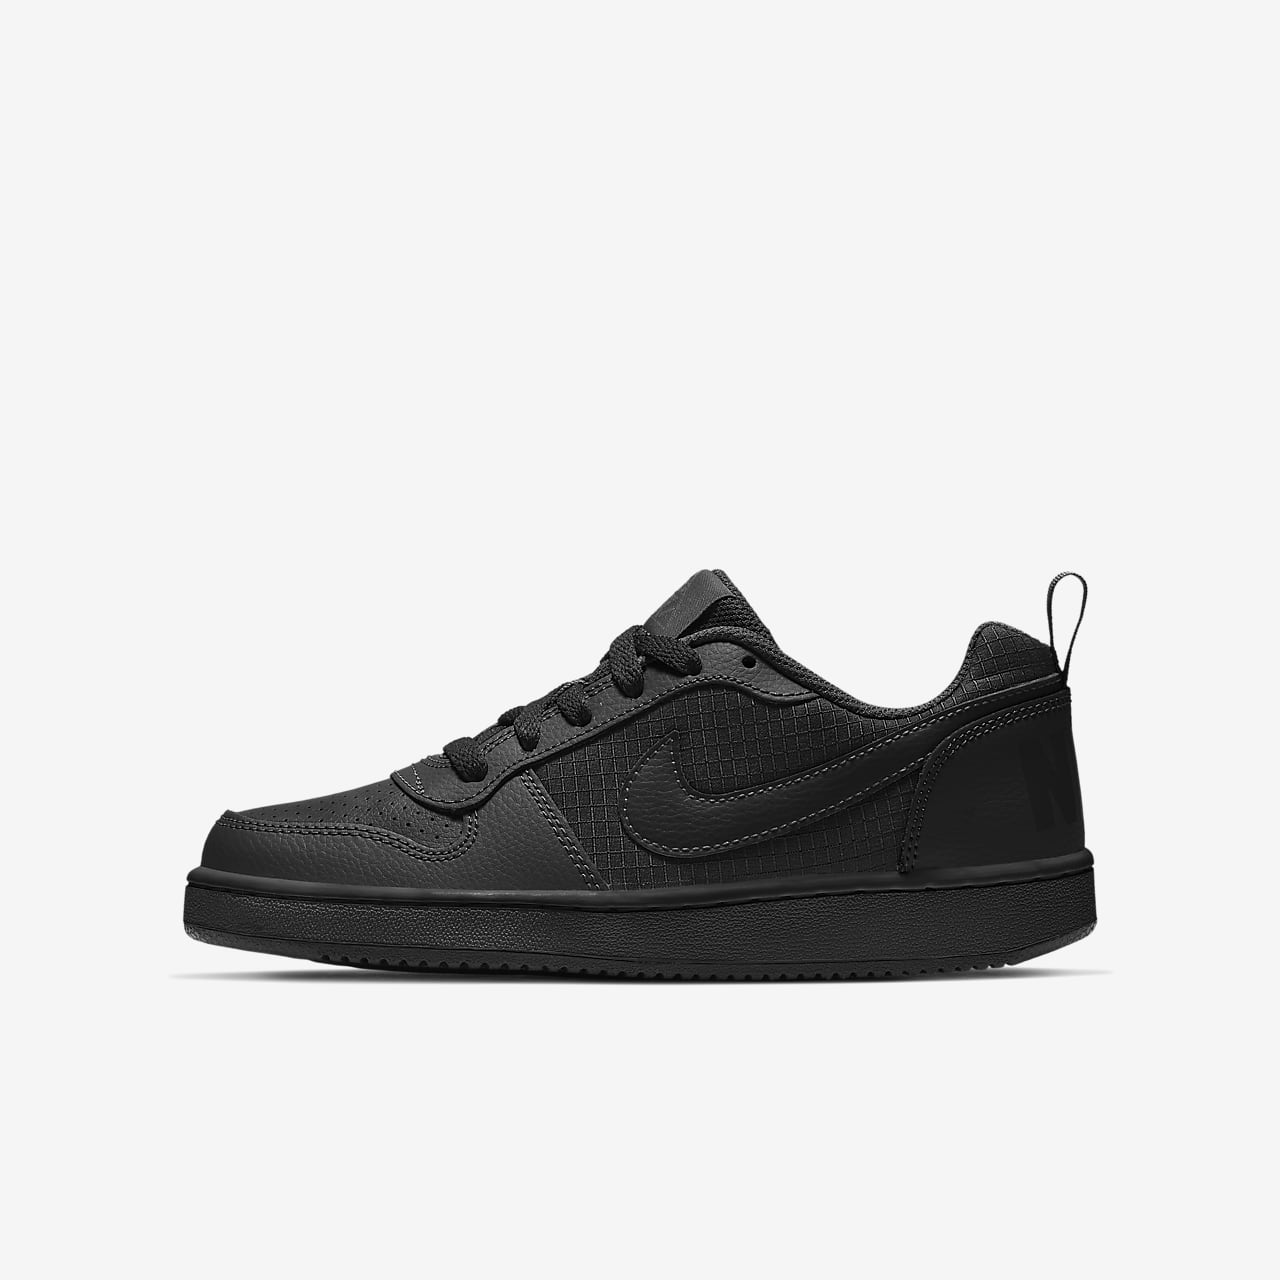 Calzado para niños talla grande Nike Court Borough Low